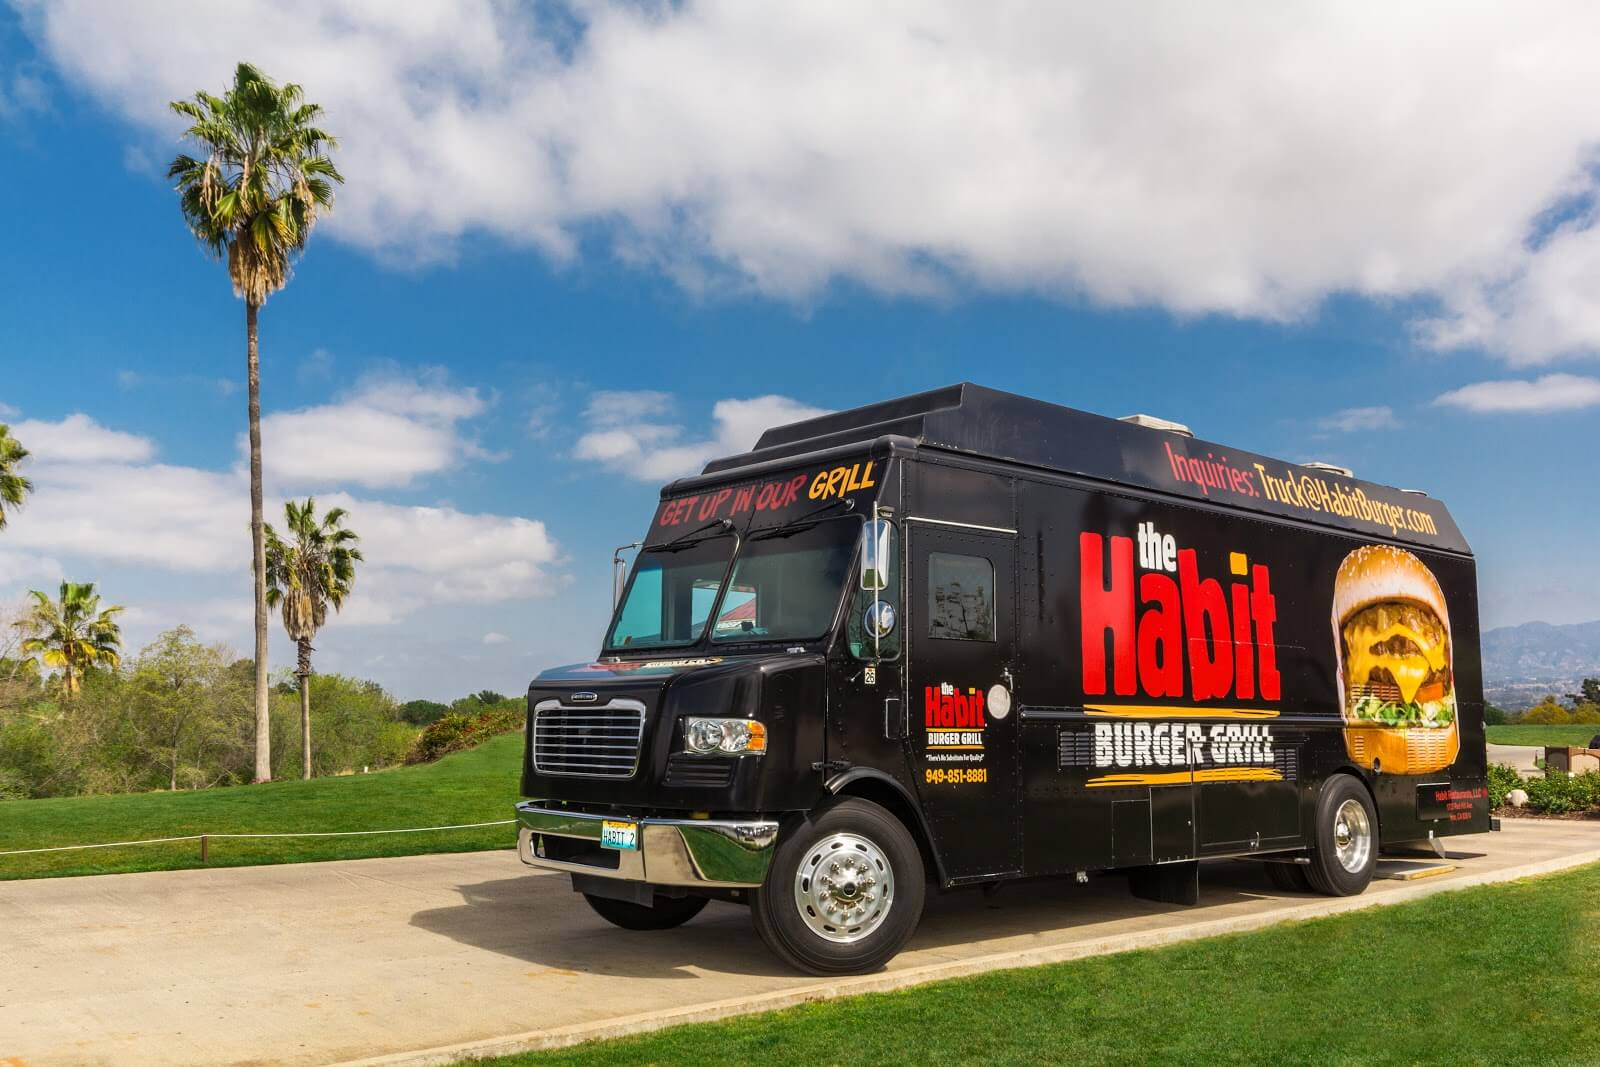 Habit Burger Grill Deploys Food Trucks Throughout Southern CA To Deliver Meals to Frontline Workers